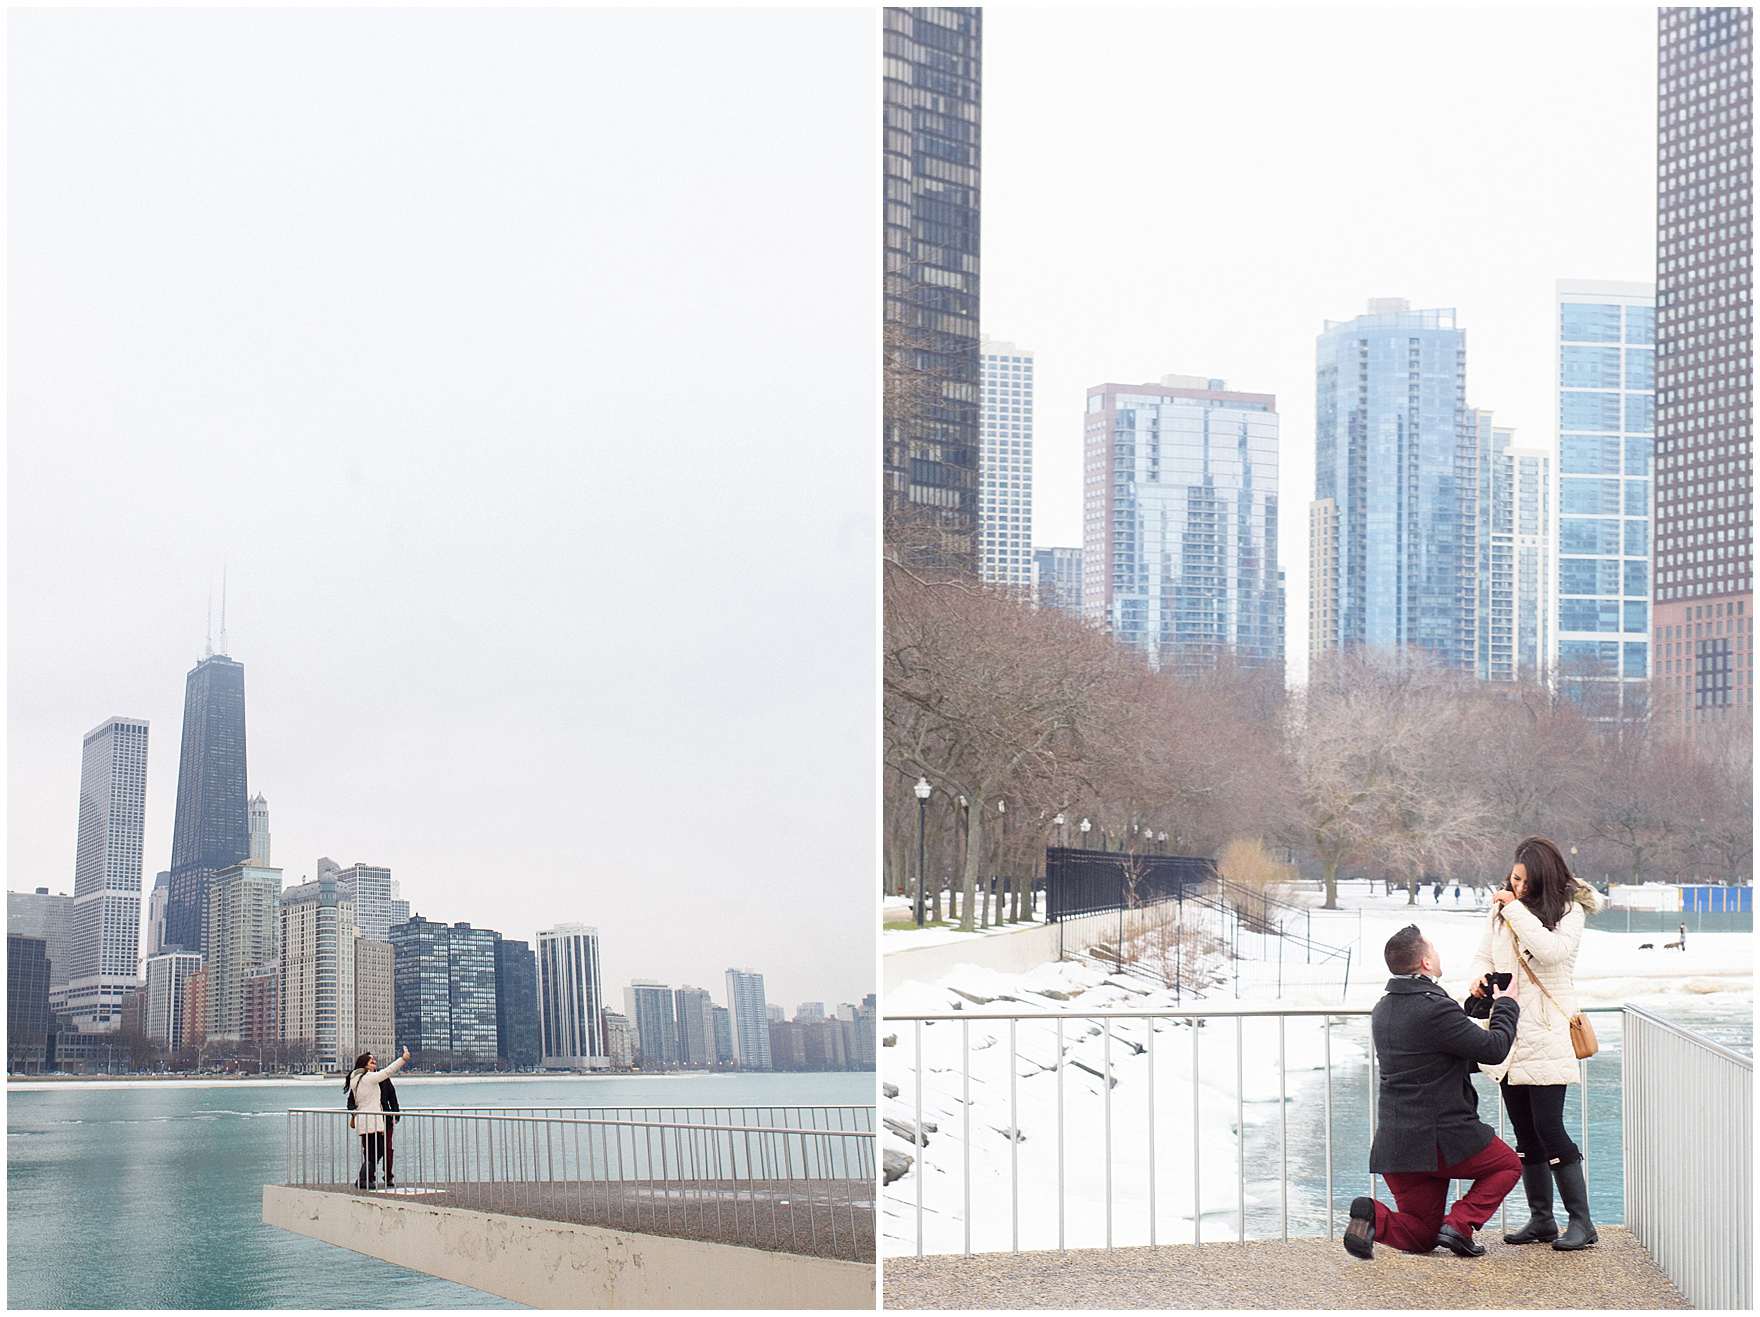 The boyfriend drops to one knee to pop the question during a Chicago skyline proposal.